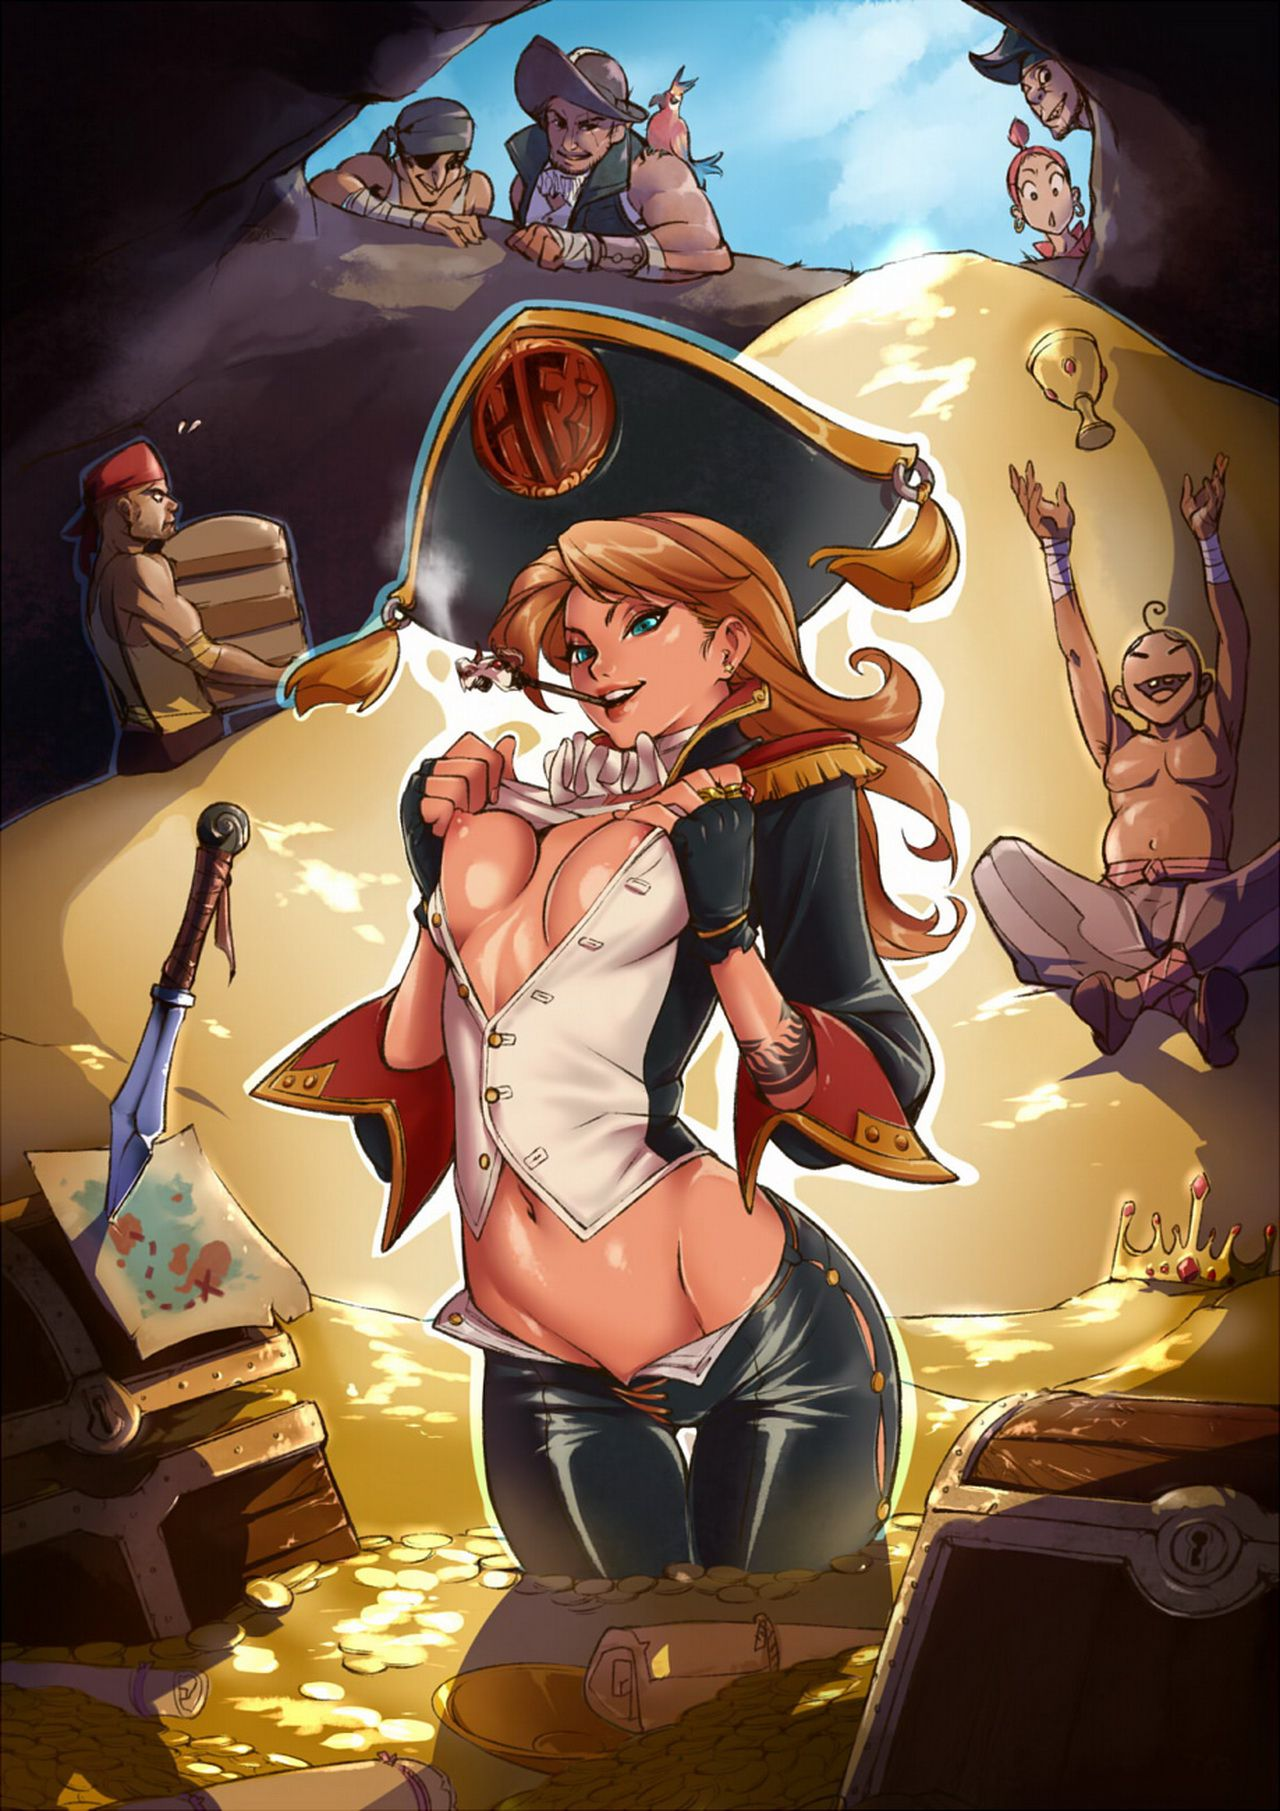 Pirate porn fantasy nude videos